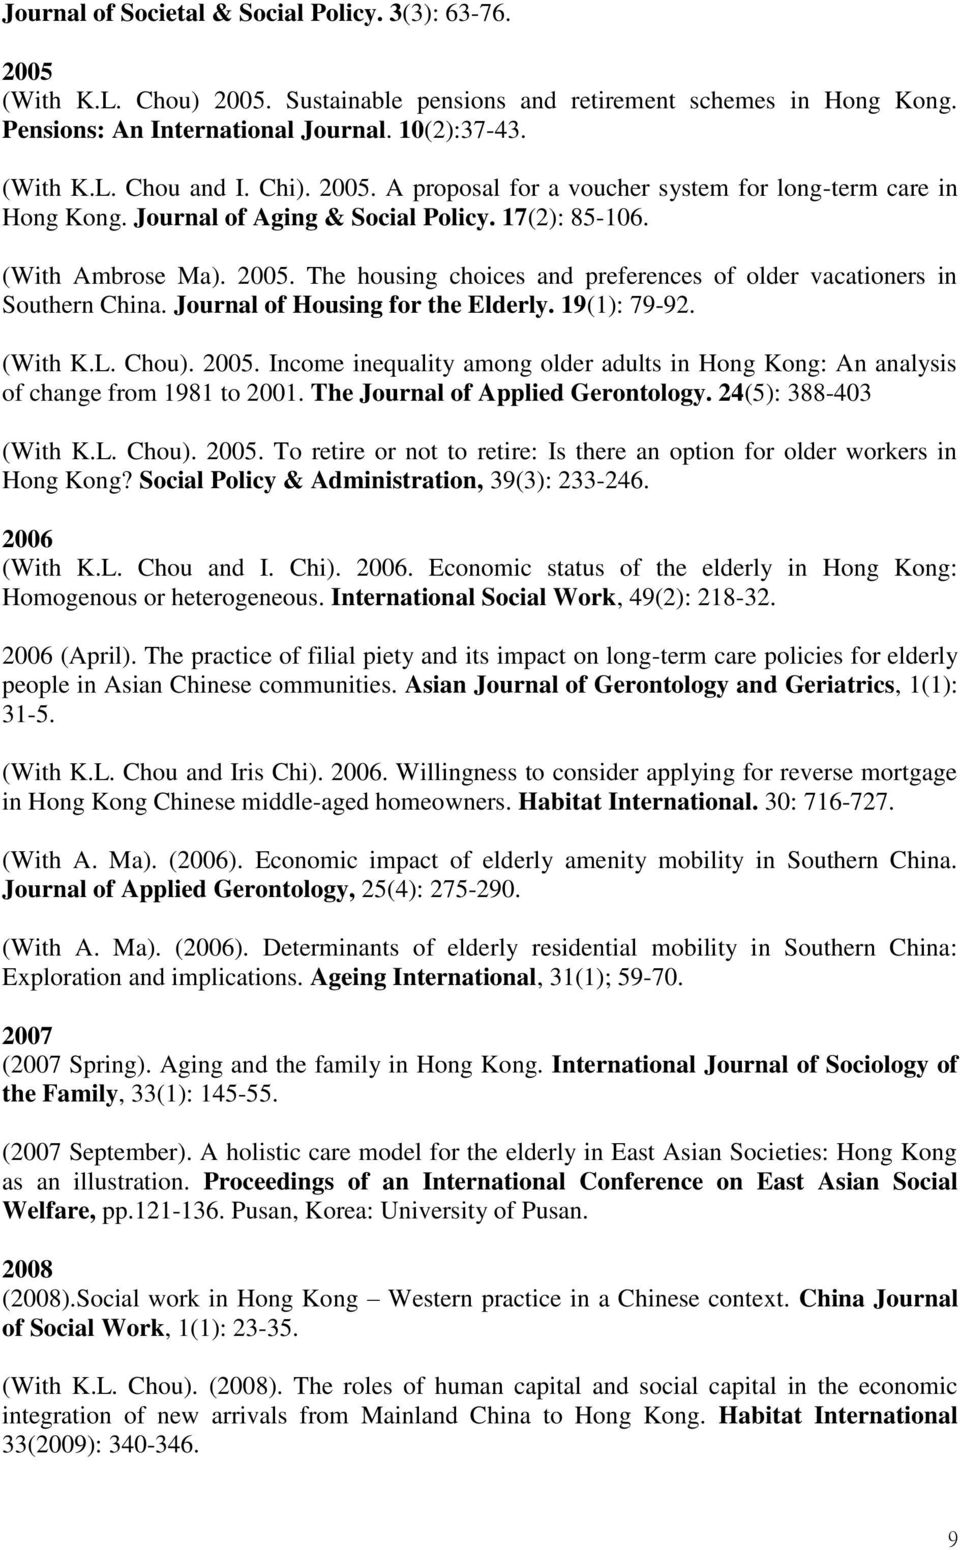 Journal of Housing for the Elderly. 19(1): 79-92. (With K.L. Chou). 2005. Income inequality among older adults in Hong Kong: An analysis of change from 1981 to 2001.